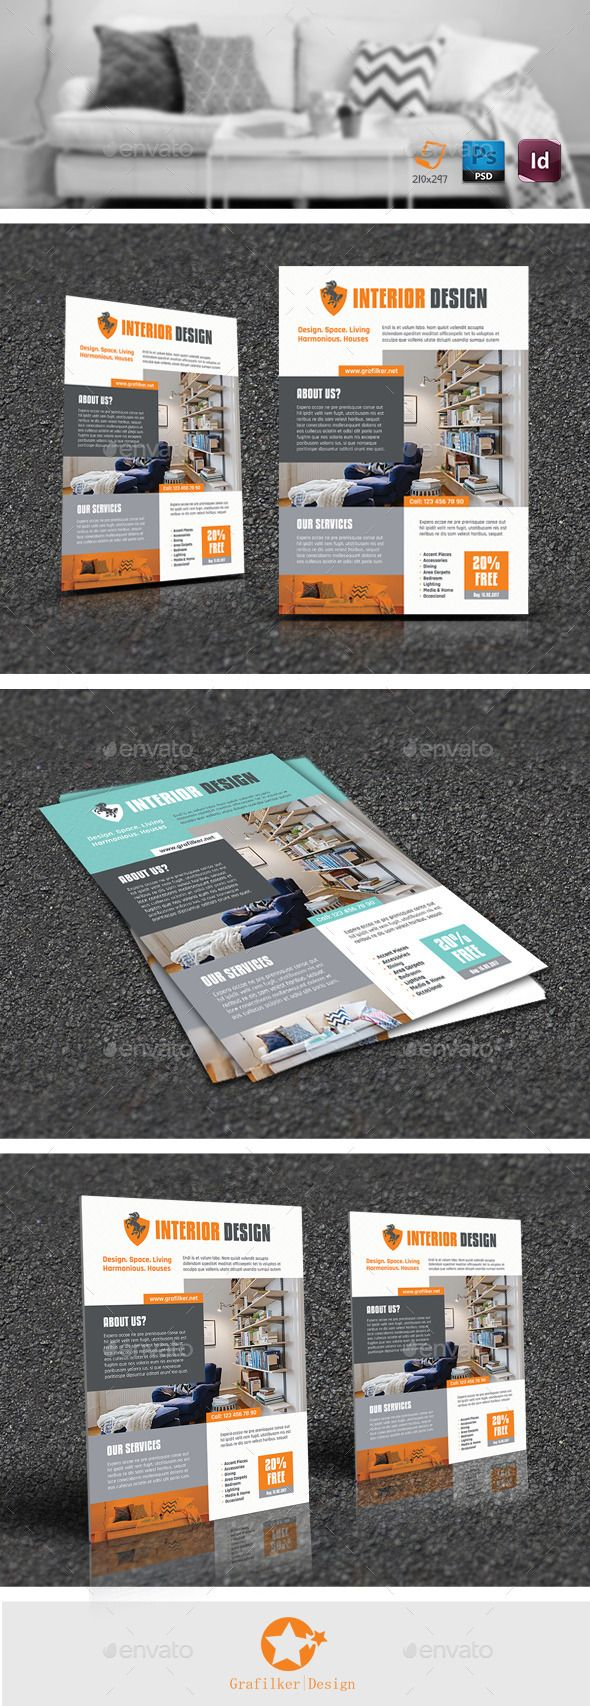 Interior Flyer Template #design Download: http://graphicriver.net/item/interior-flyer-templates/12137495?ref=ksioks